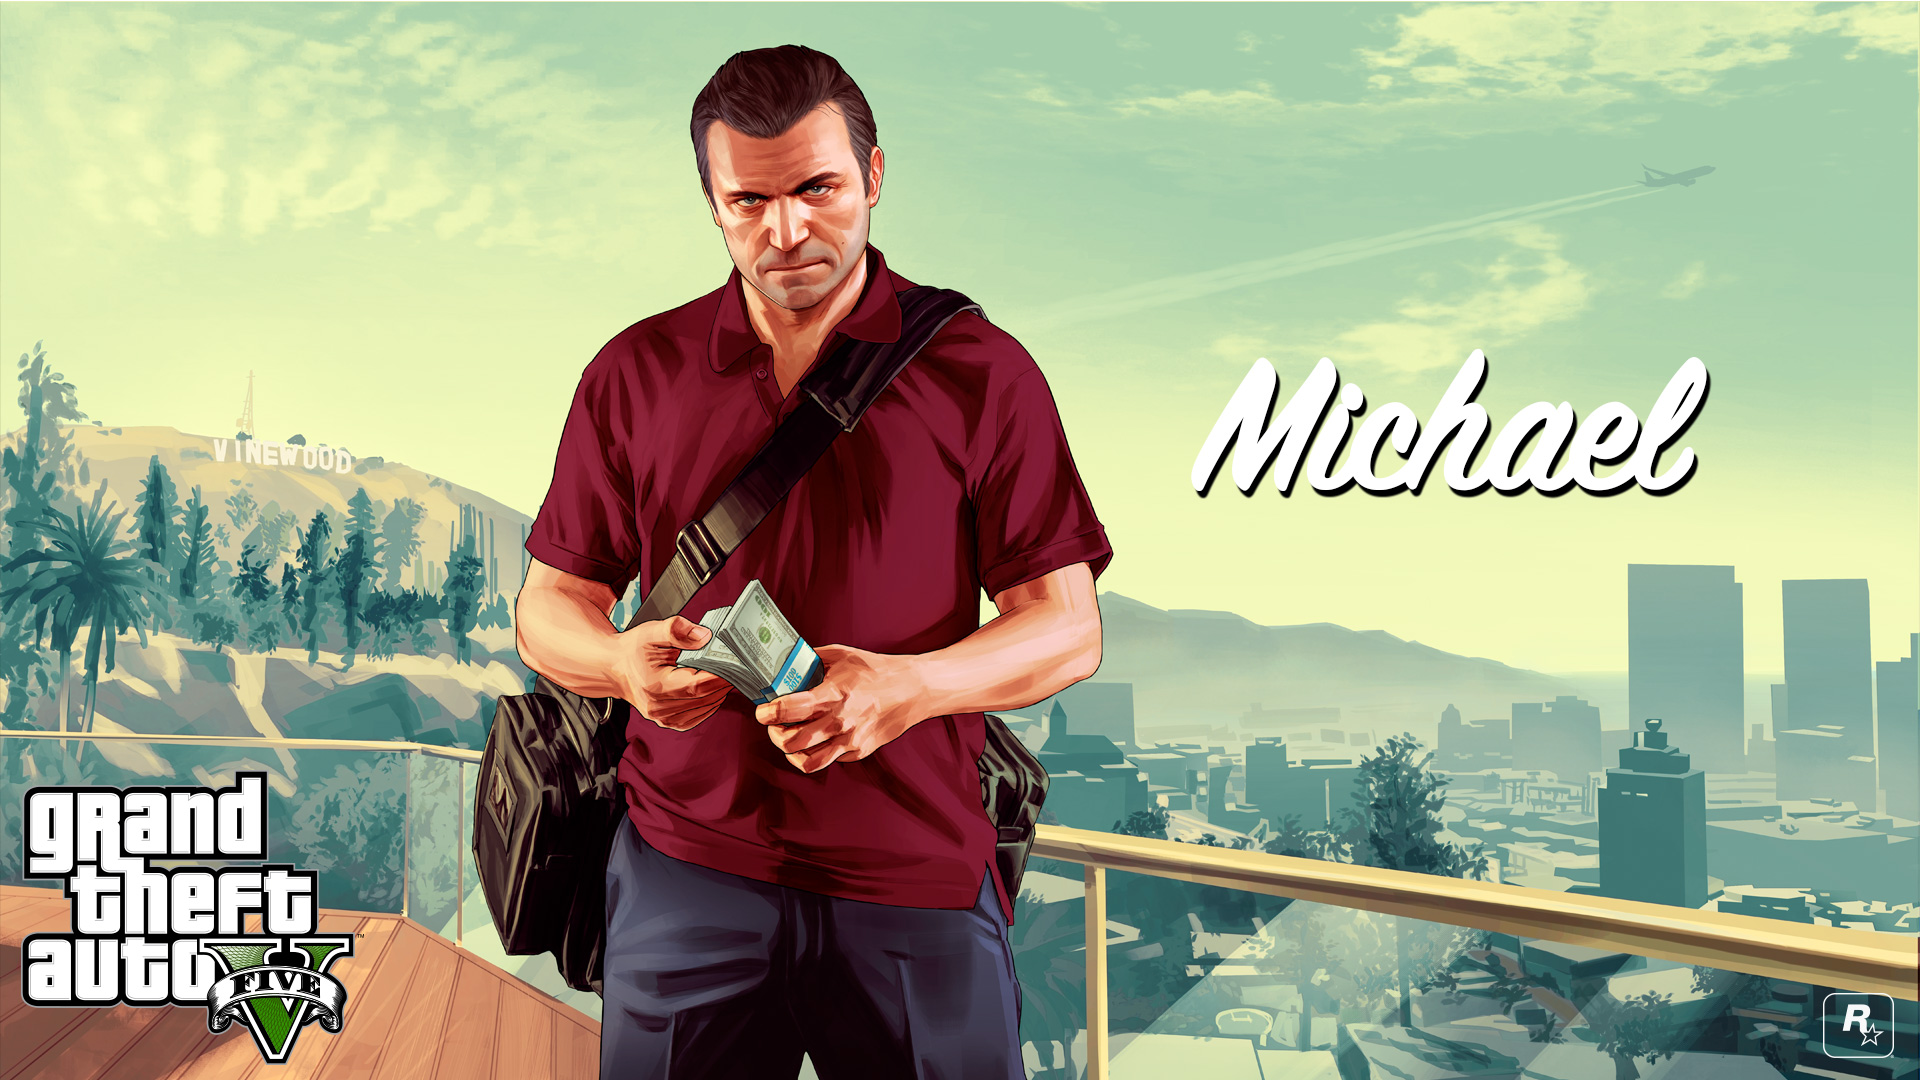 Gta 5 Wallpaper hd 1080p Gta 5 Michael Wallpaper hd 1920x1080